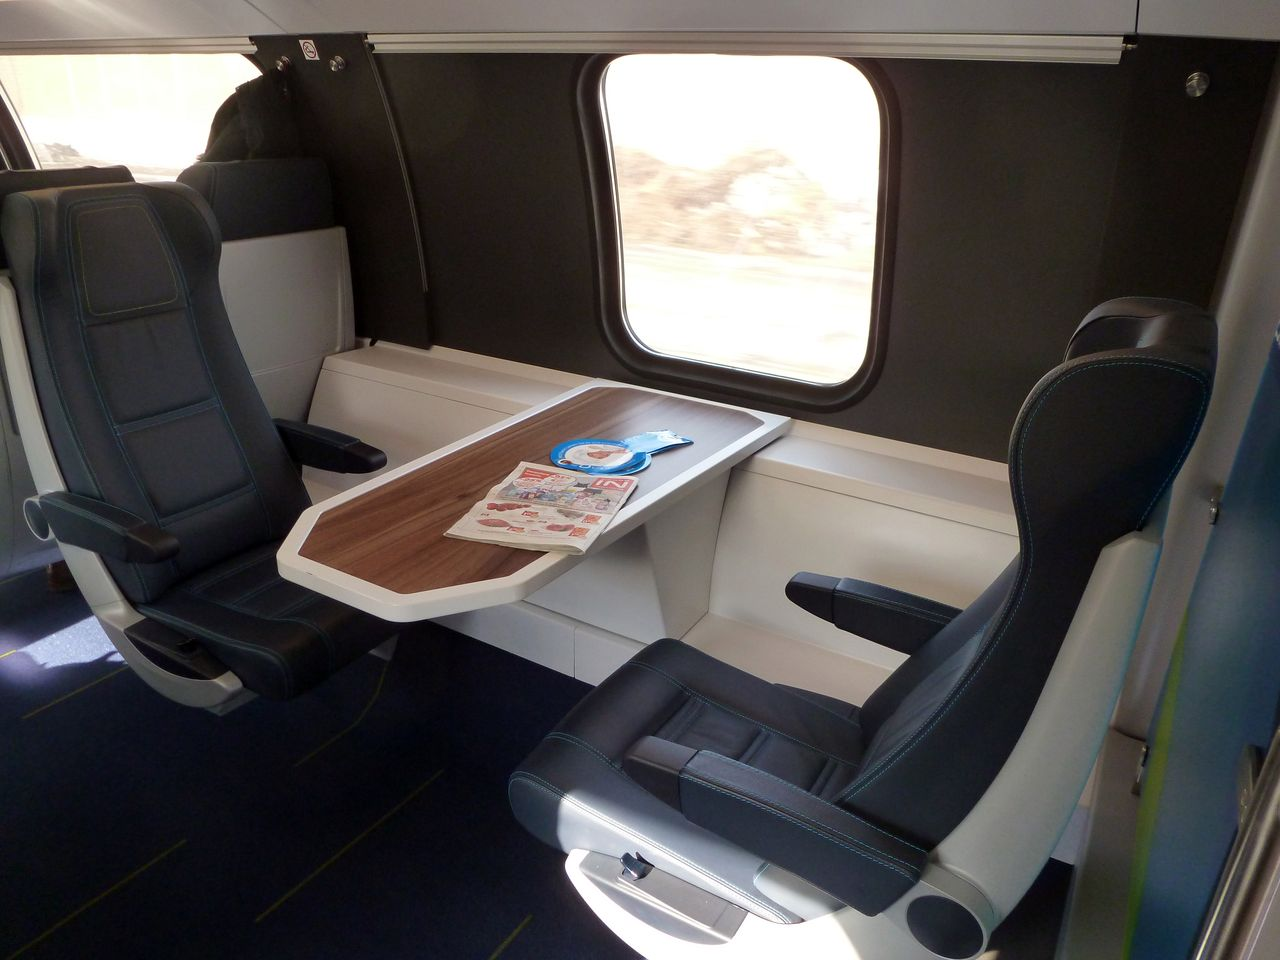 http://railfaneurope.net/pix/at/private/Westbahn/interior/wb_ieo2.jpg